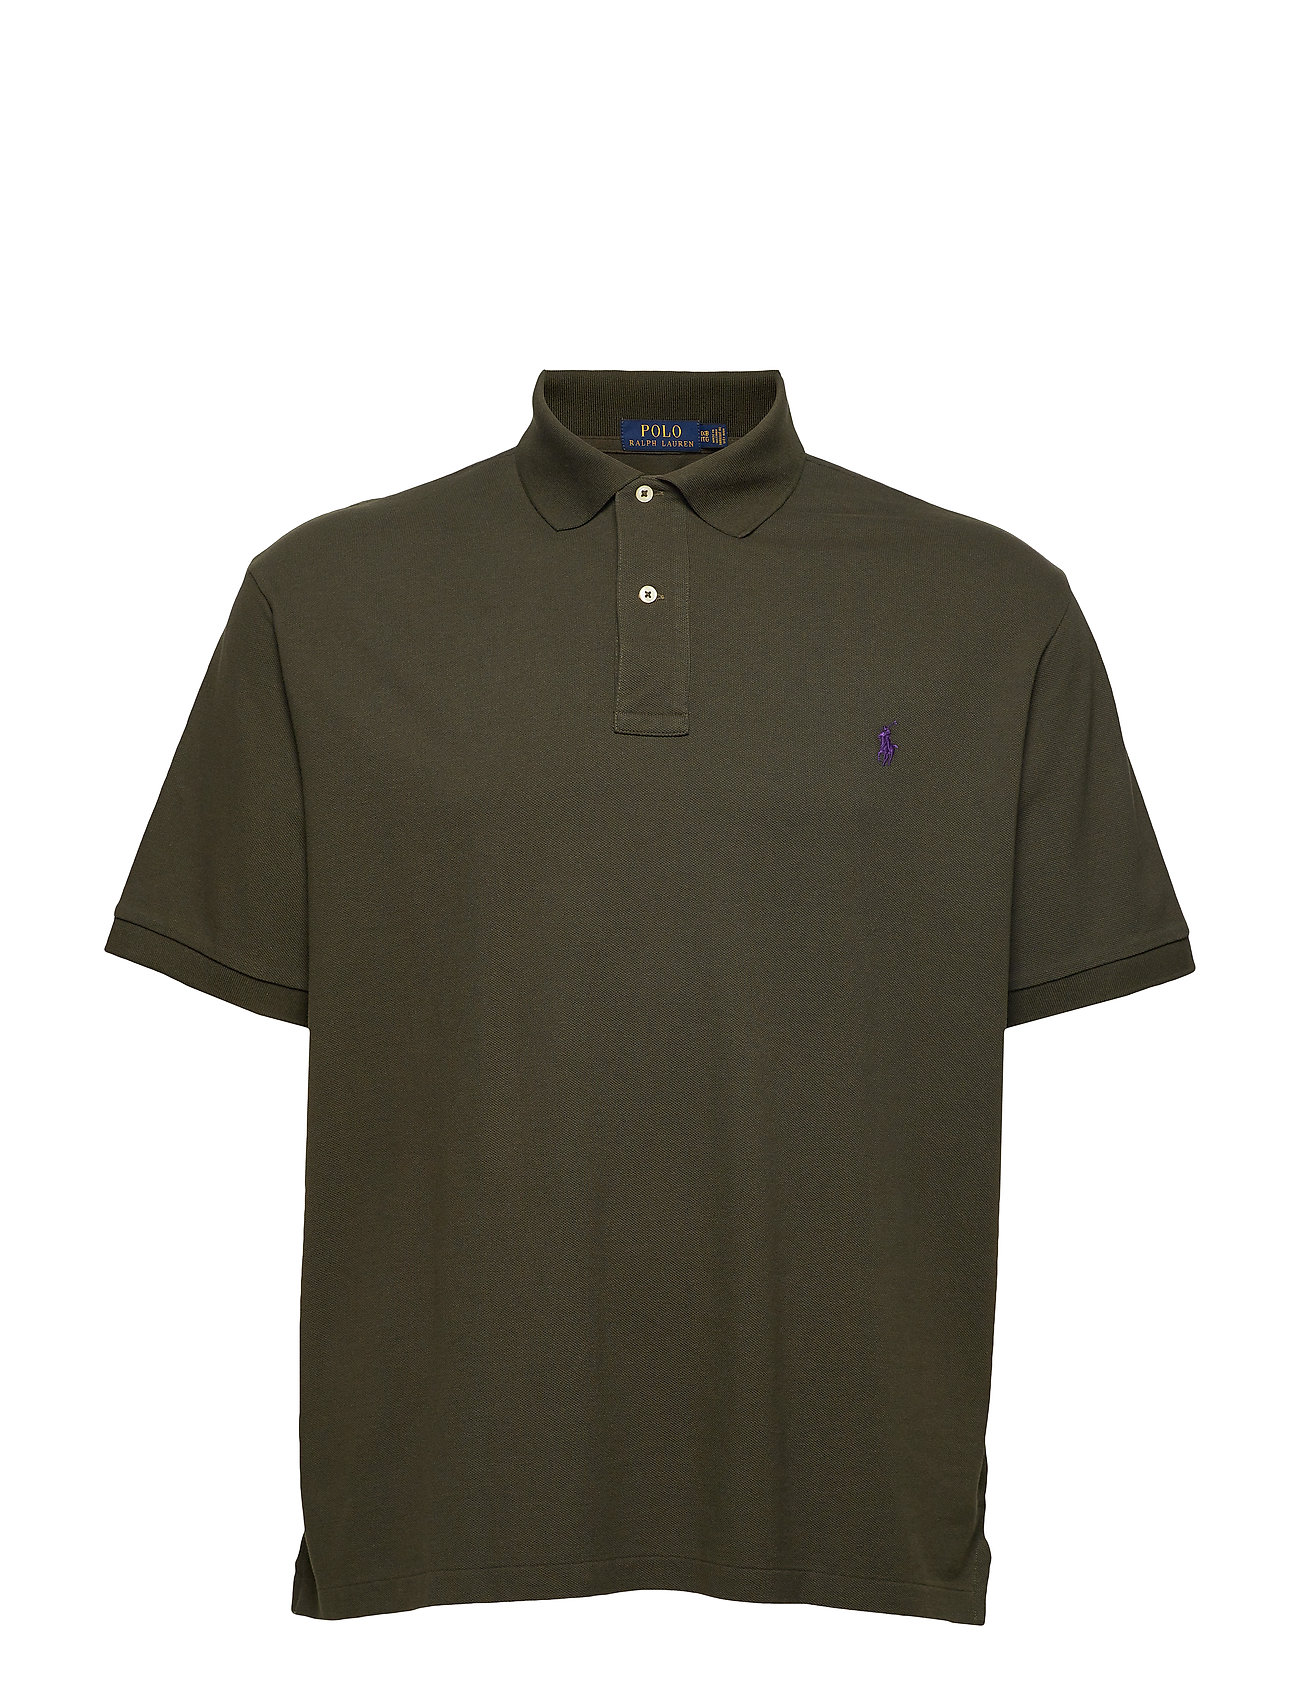 Polo Ralph Lauren Big & Tall Classic Fit Mesh Polo Shirt - ESTATE OLIVE/C498